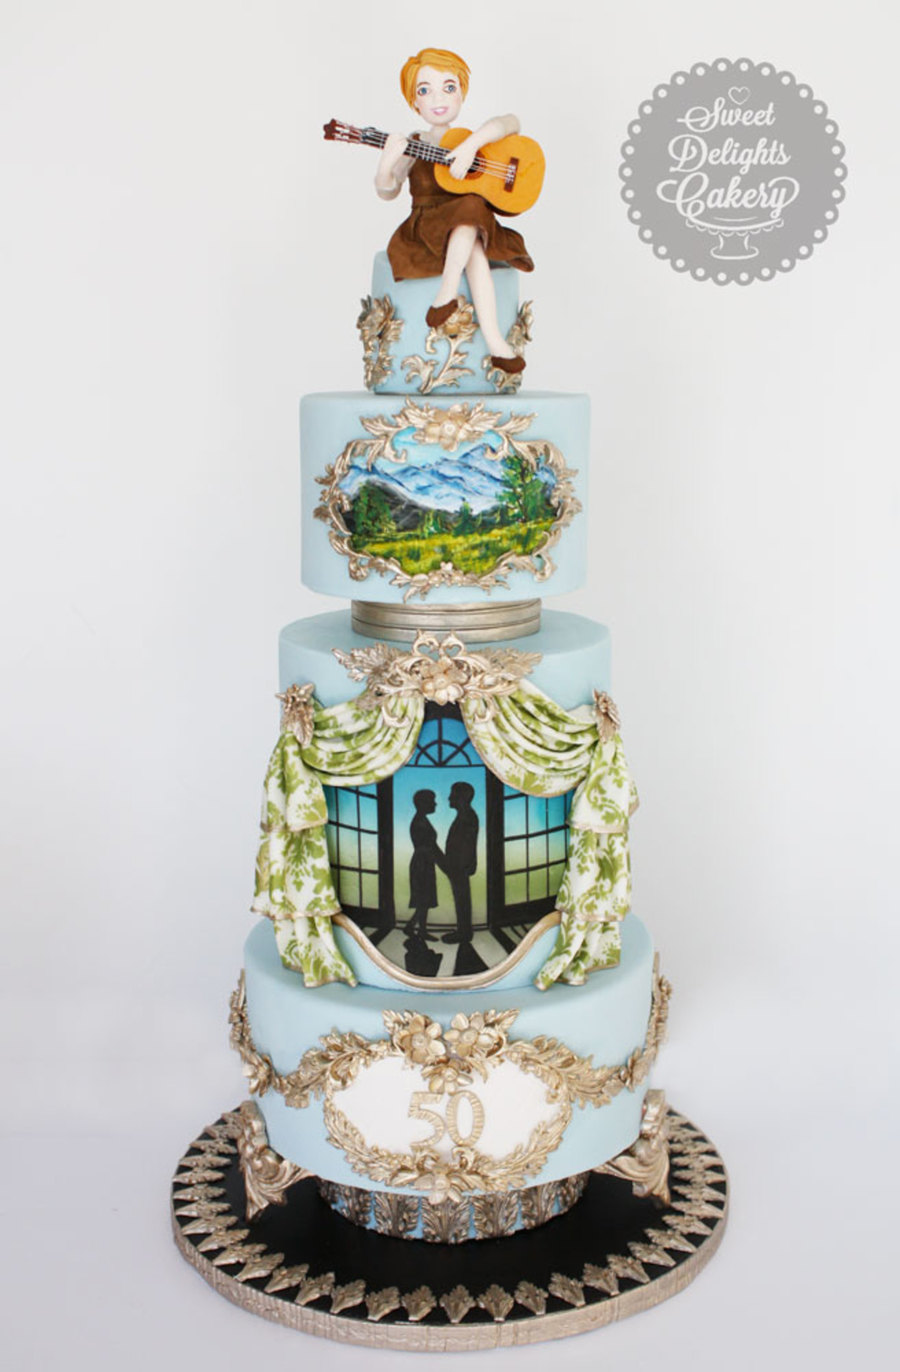 The Sound Of Music Cakecentral Com